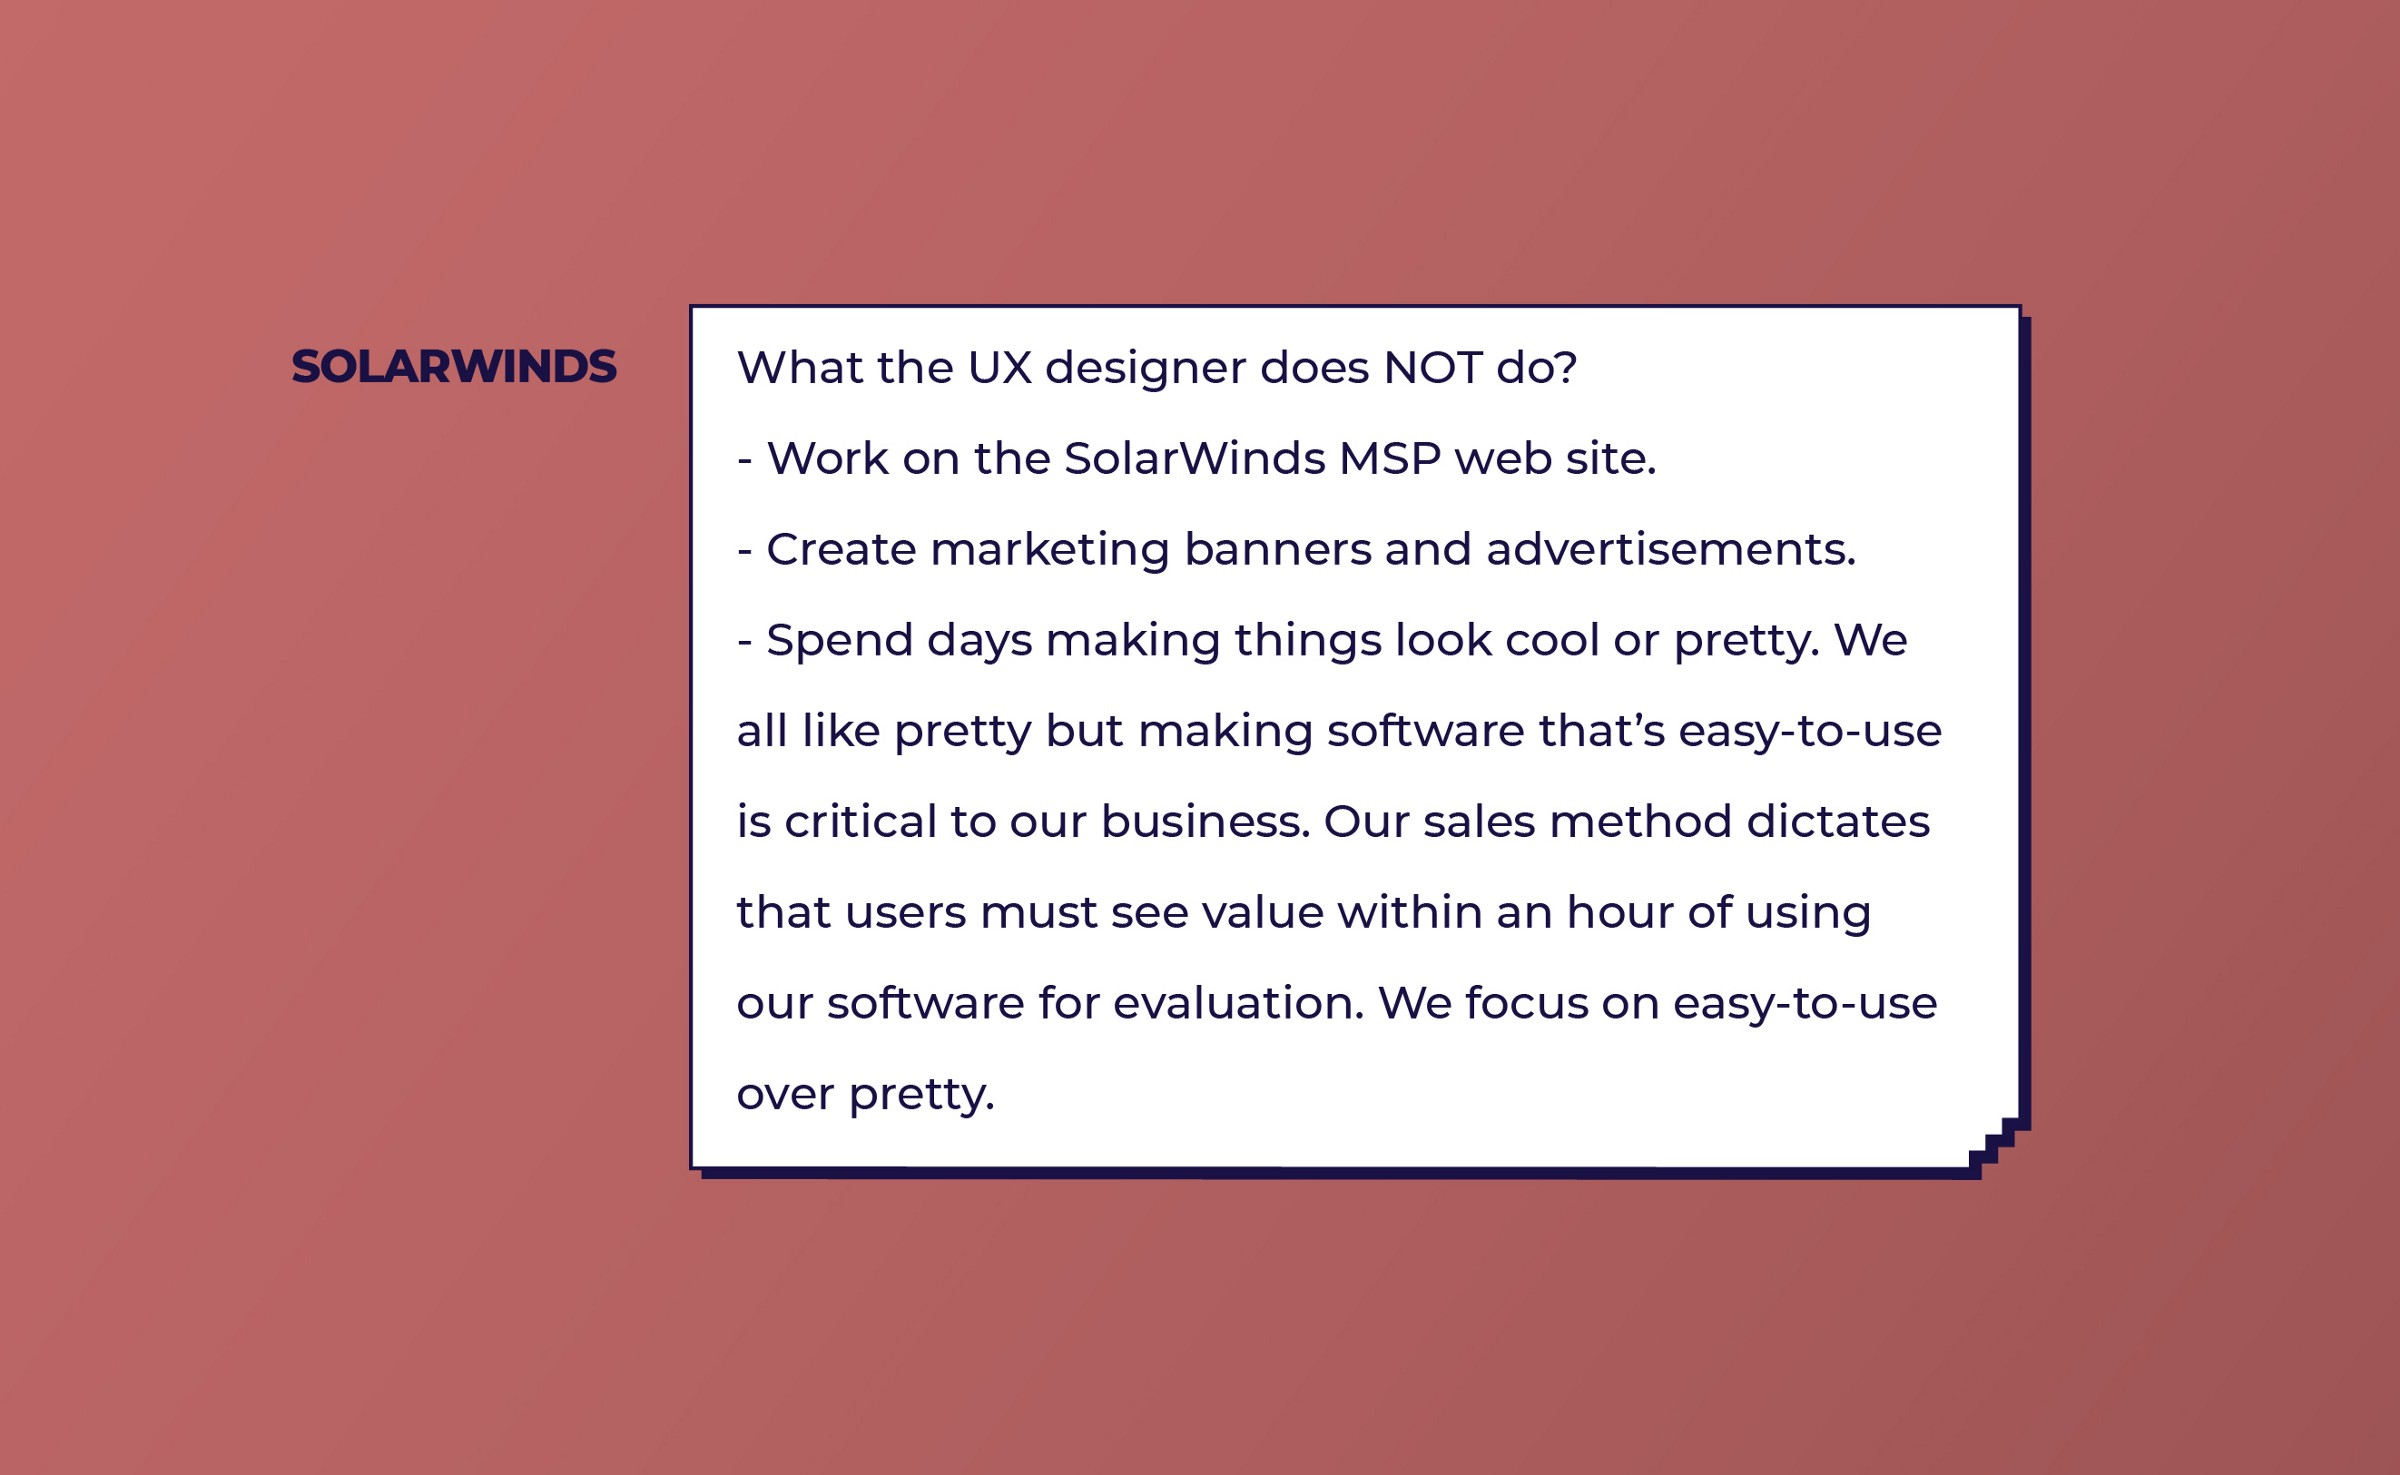 What a UX Designers does not do, according to Solarwinds: visual design and other 'simple' work